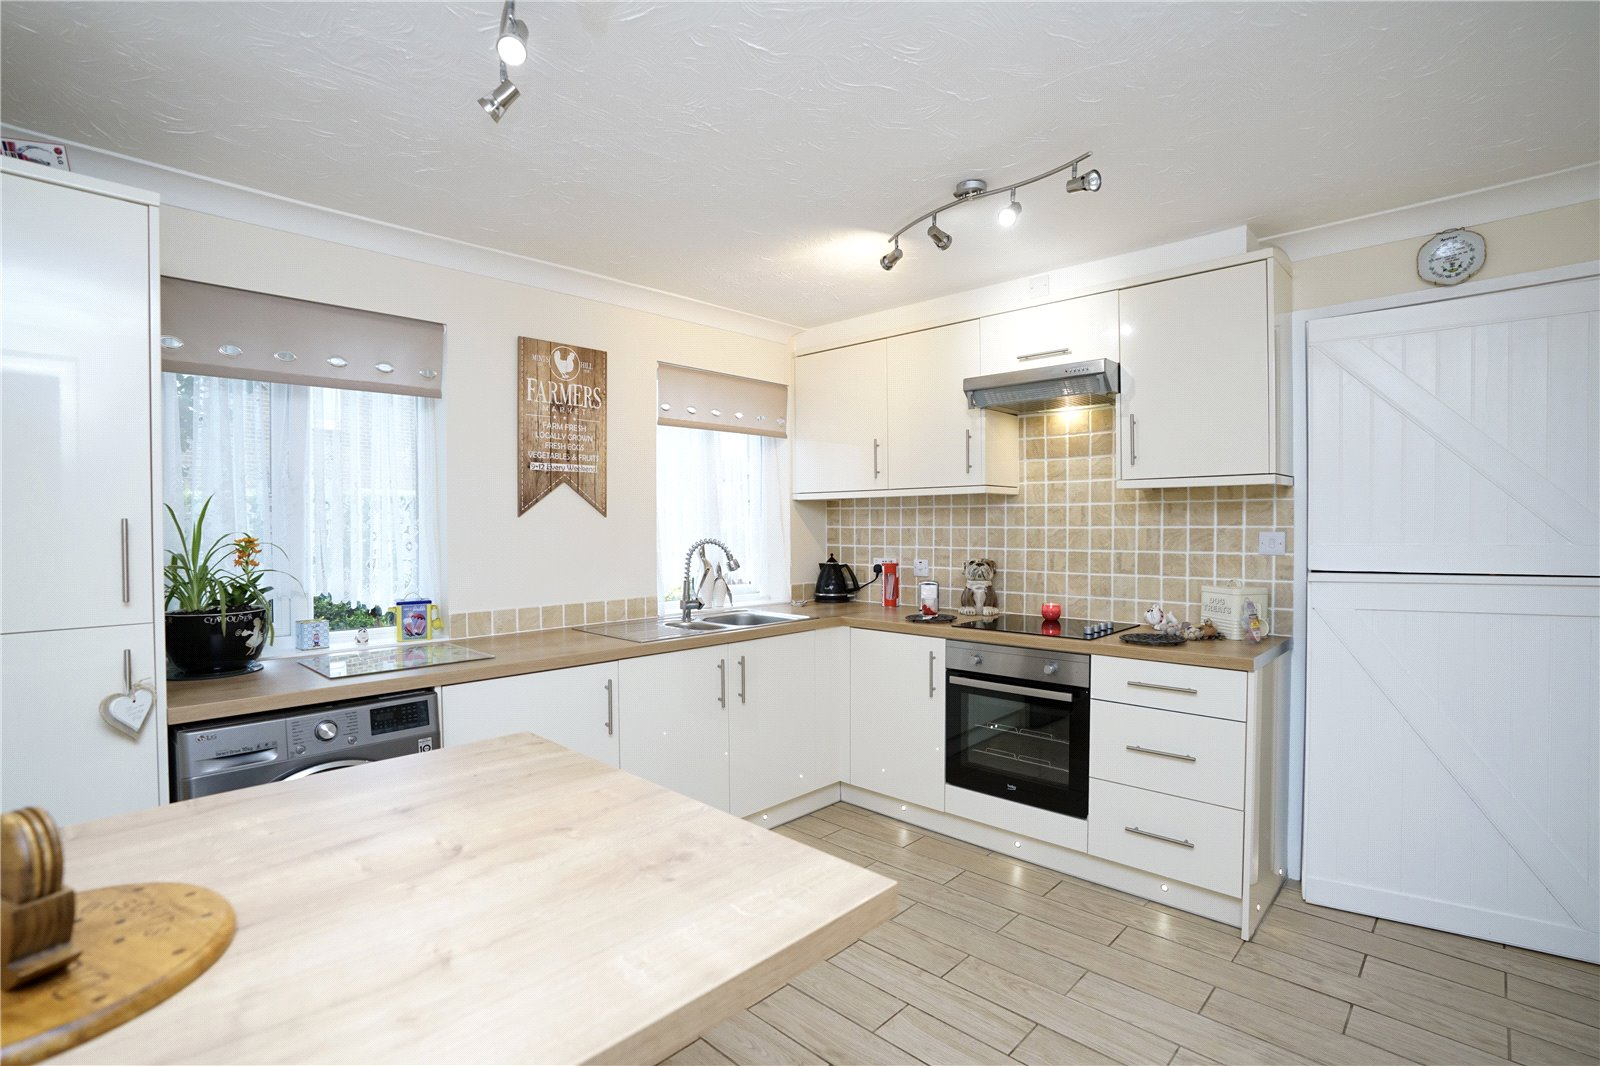 3 bed house for sale in Countess Close, Eaton Socon 4